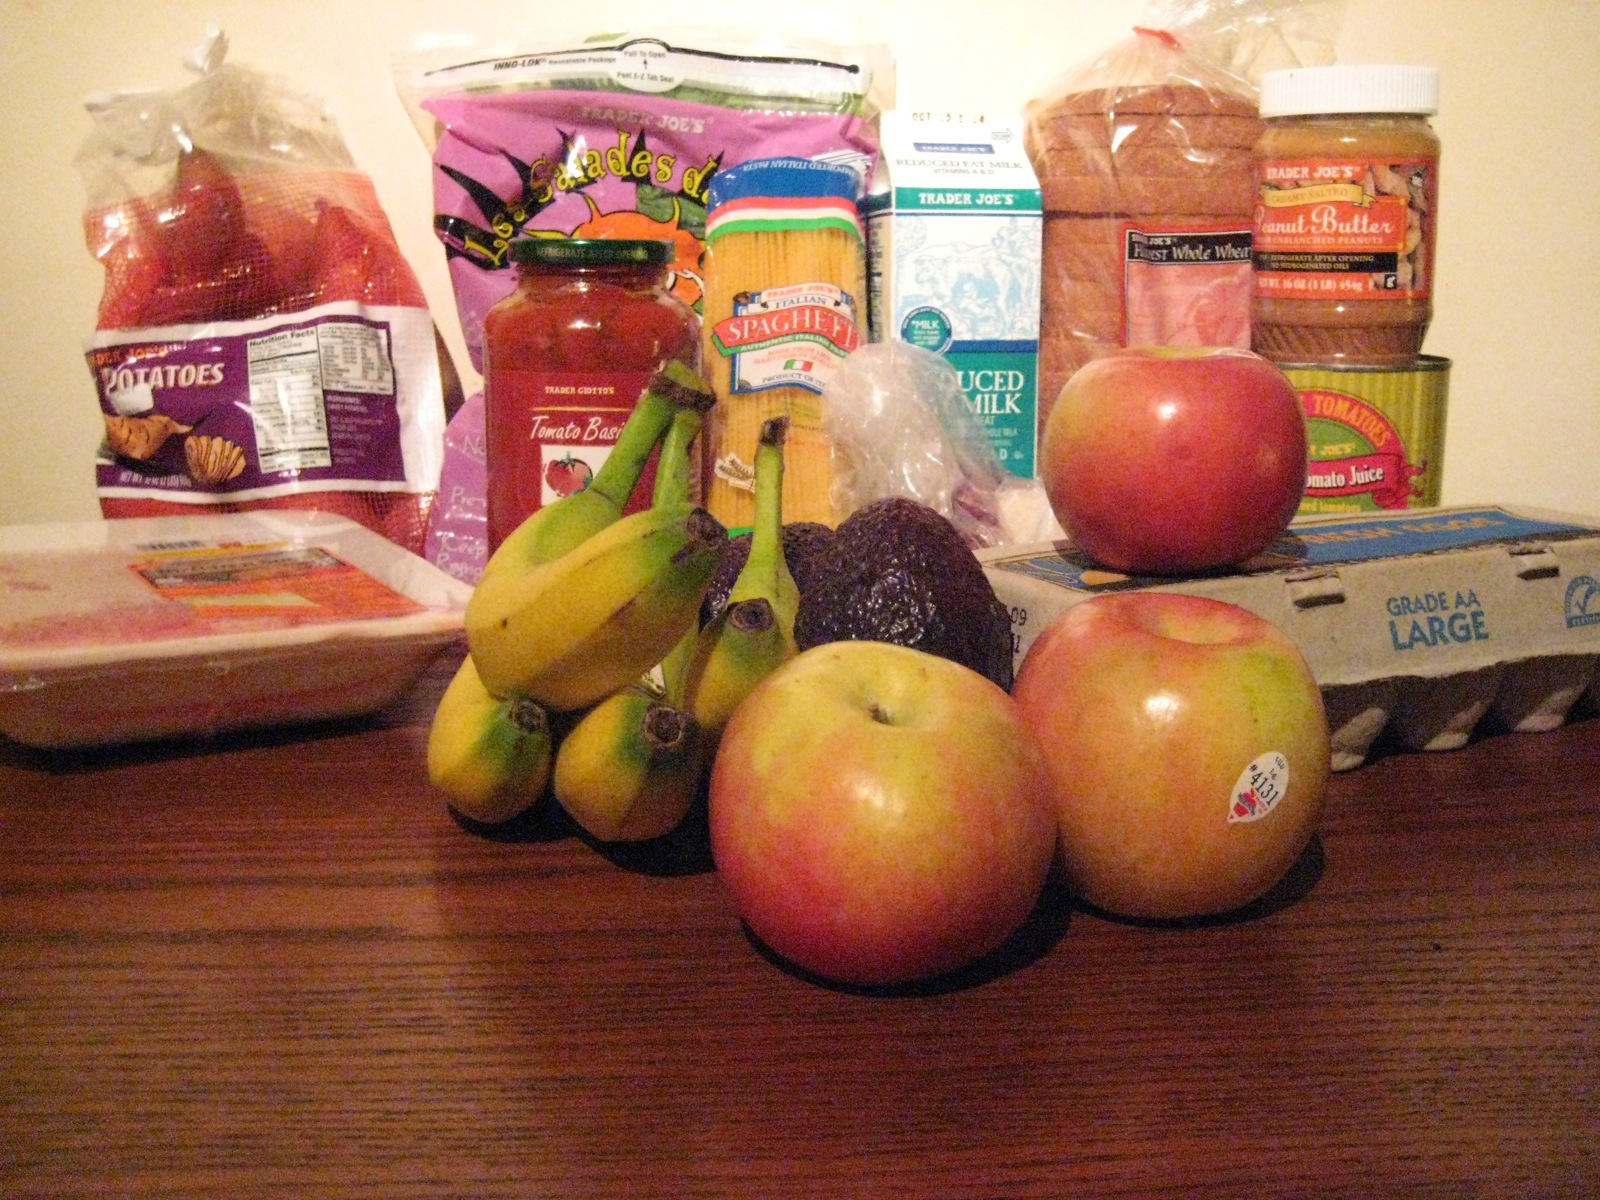 One week's worth of groceries